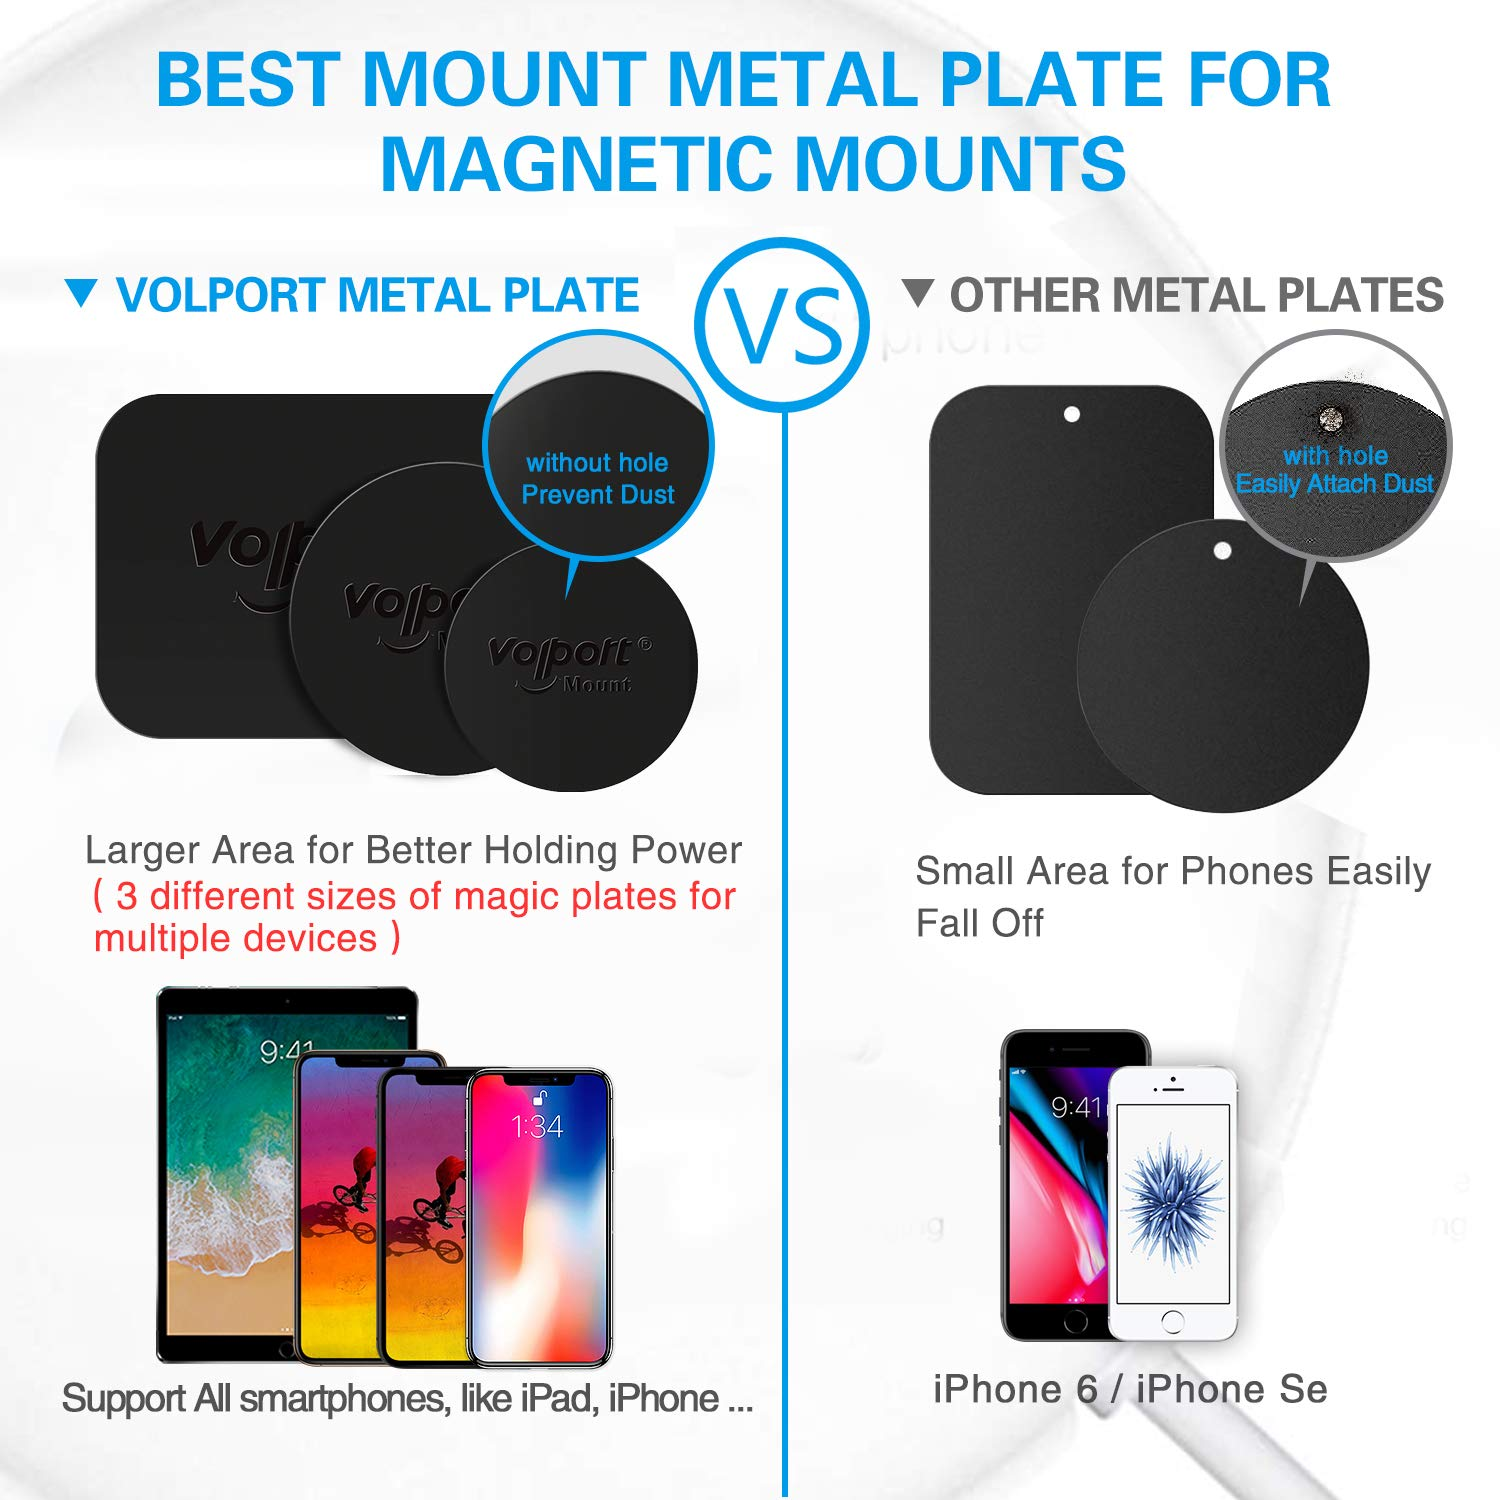 Vent//CD//Windshield//Dashboard - Rectangle and Round VM0003US Metal Plate for Phone Magnet 8 Pack Volport MagicPlate with 3M Adhesive Replacement for Magnetic Phone Car Mount Holder /& Cradle /& Stand